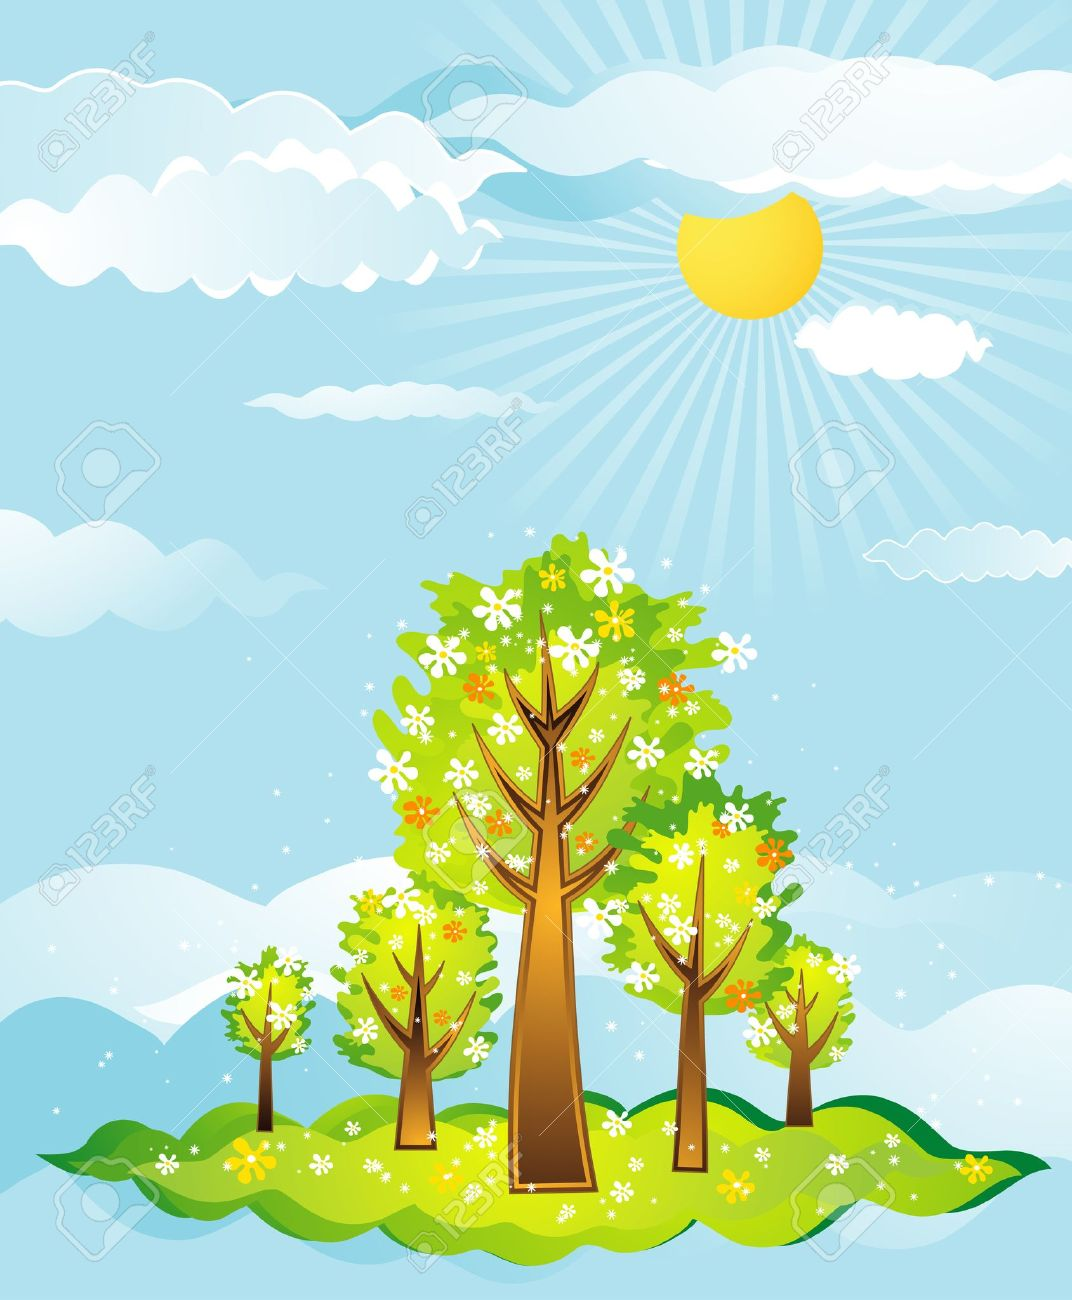 free nature clipart - photo #21